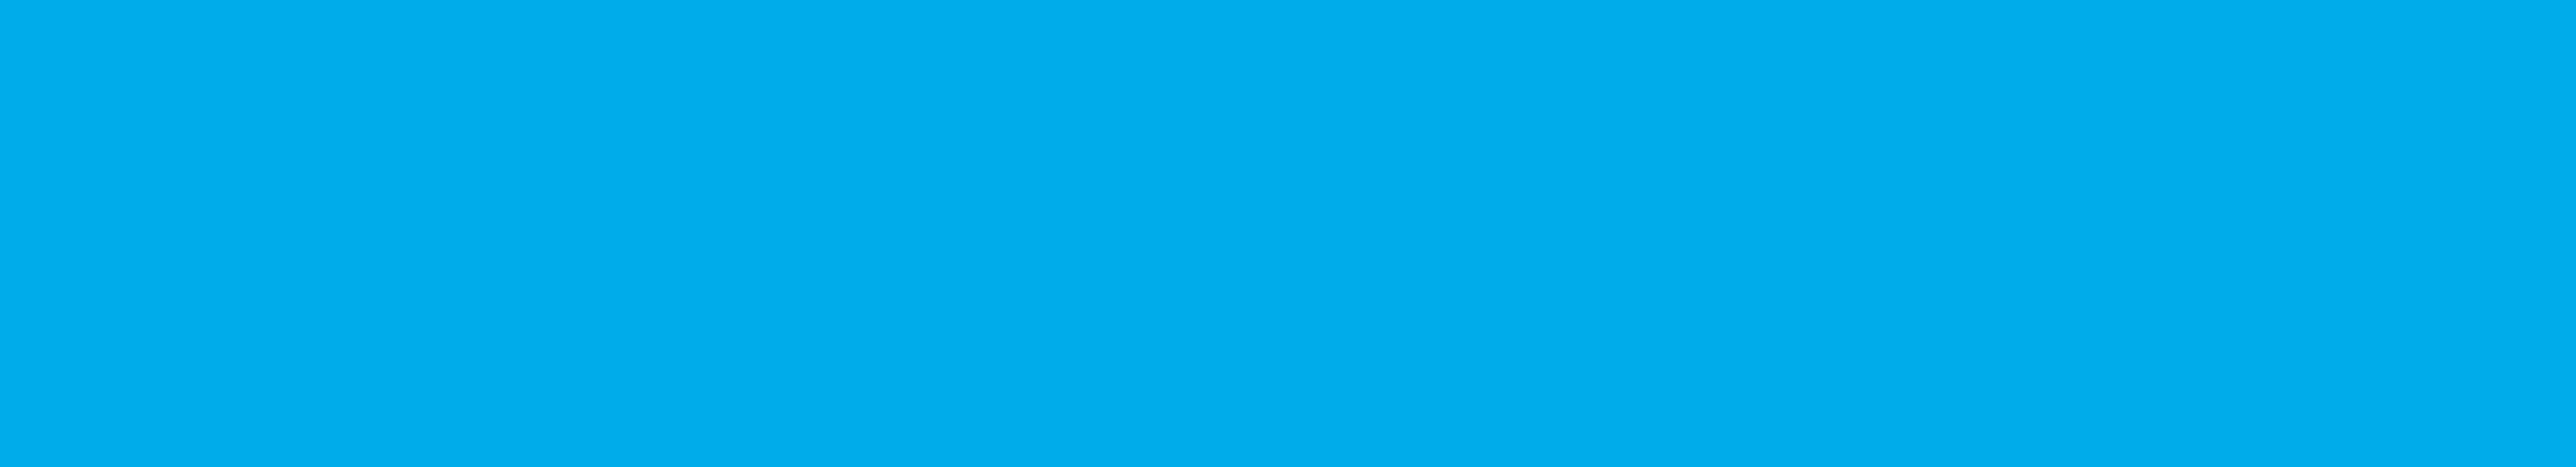 A blue bar with white writing on it.